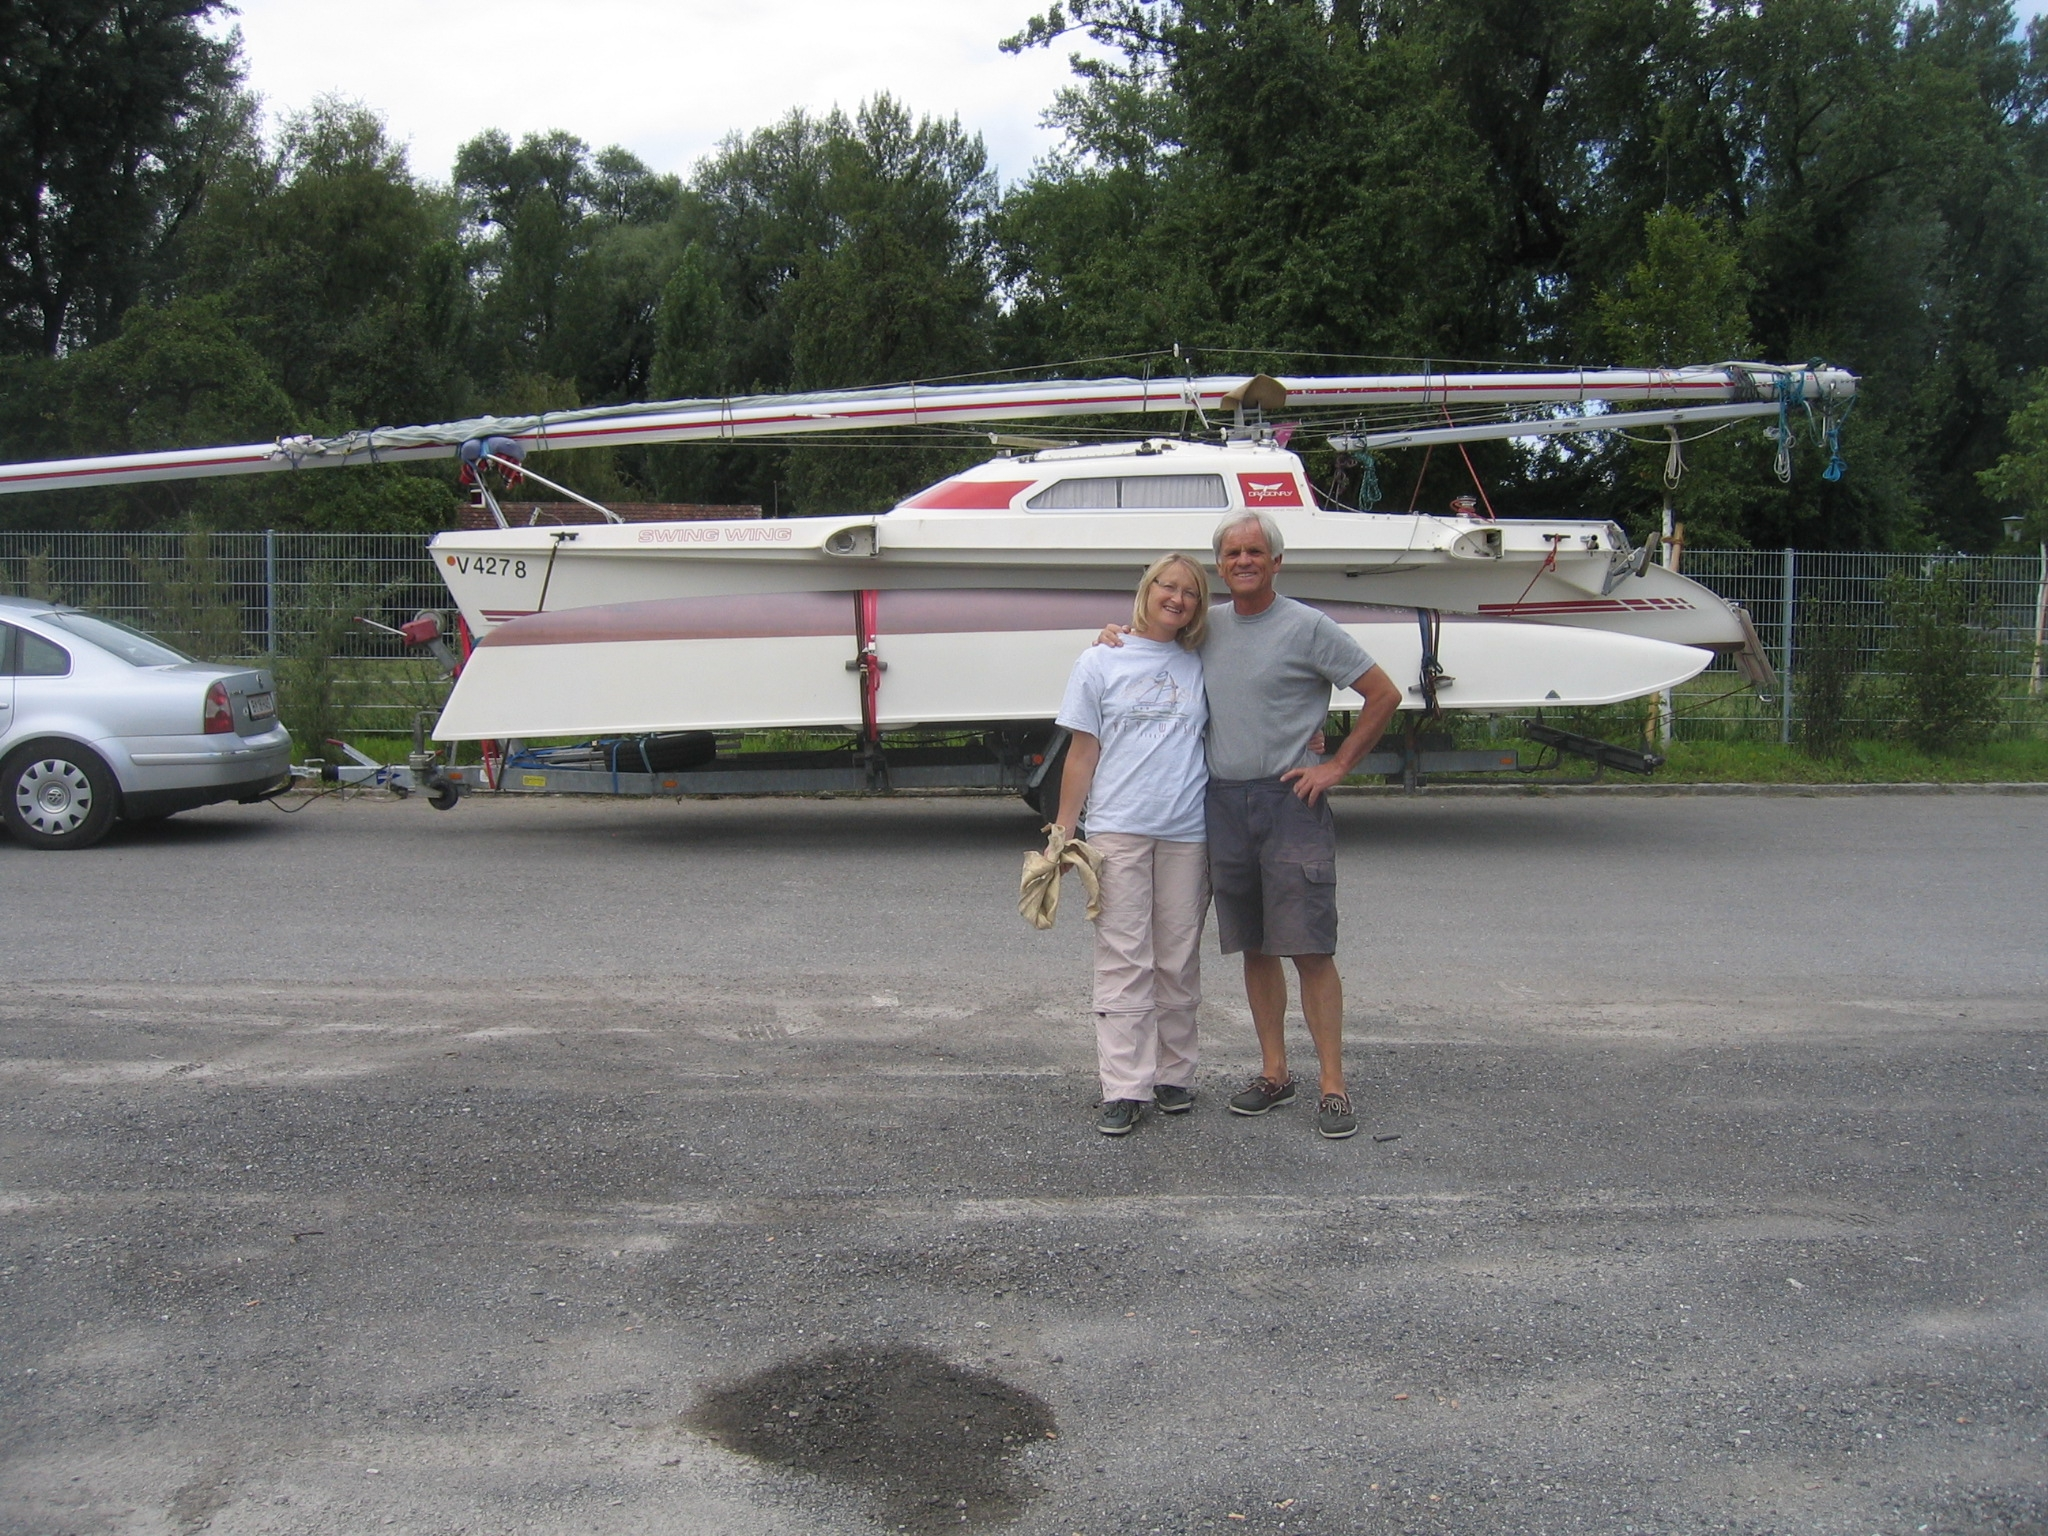 Dragonfly 800 Swing Wing   Dragonfly